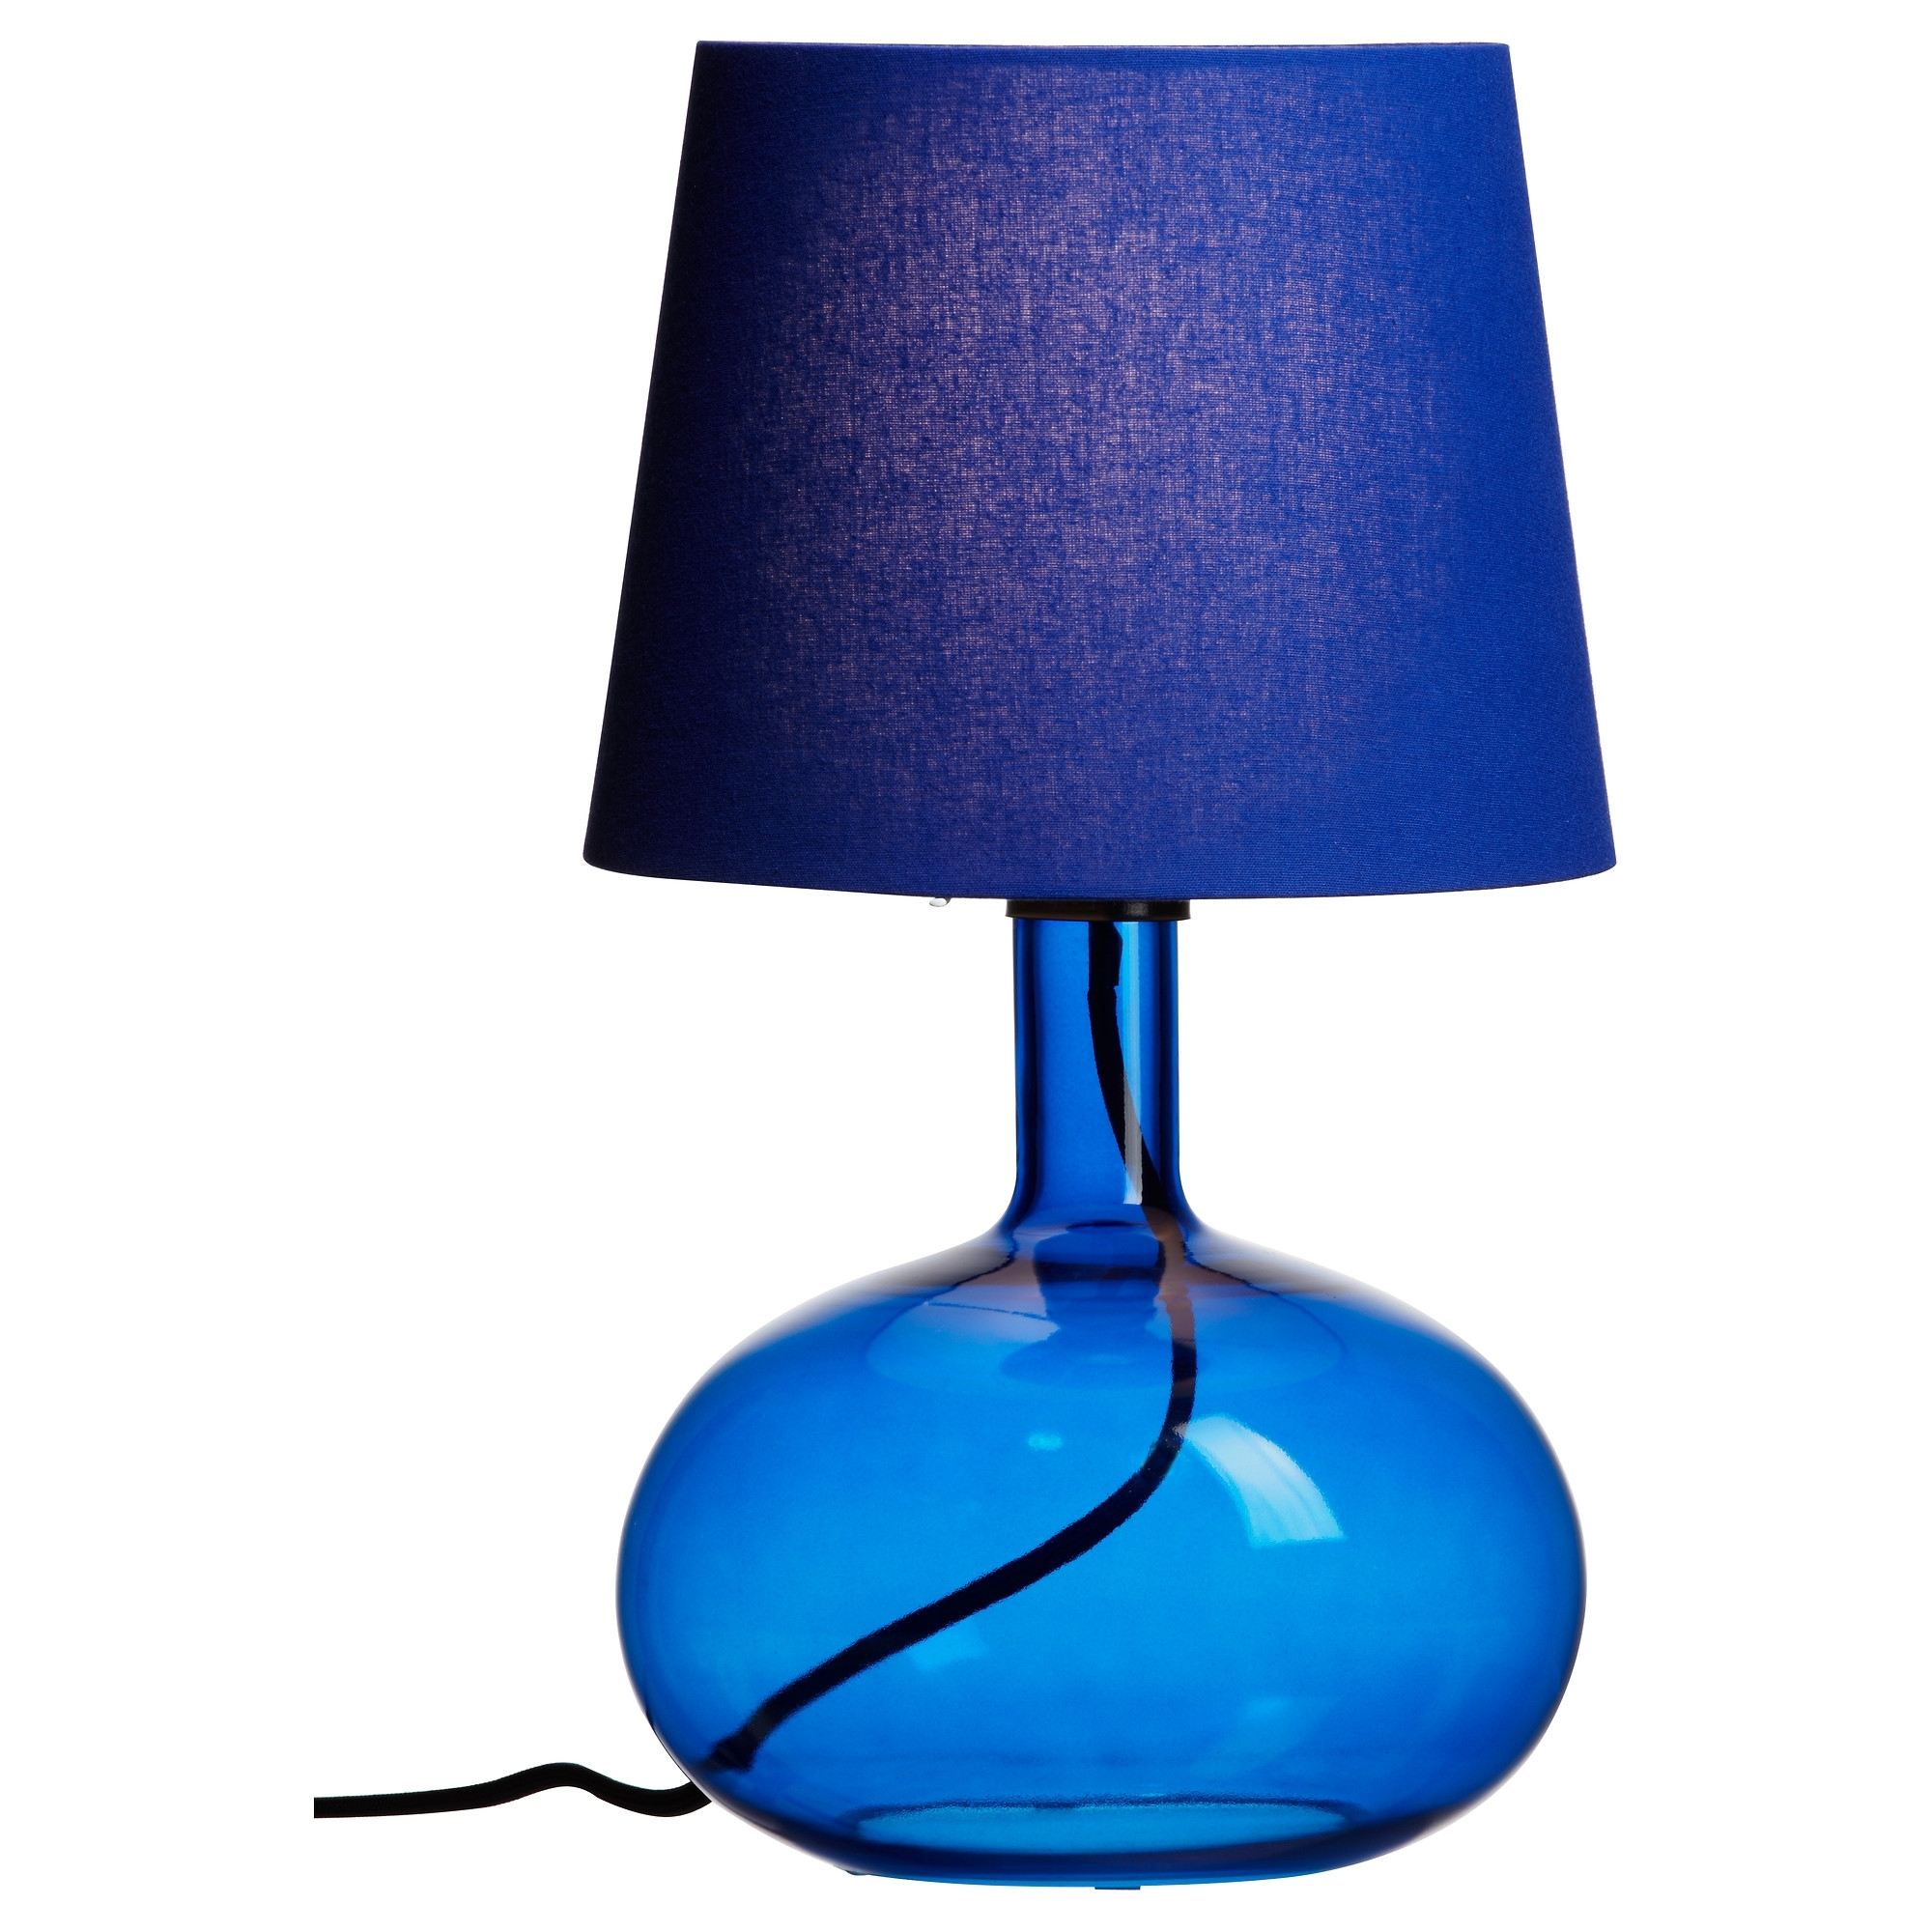 Shoplinkz, Lights With Living Room Table Lamps At Ikea (View 11 of 15)